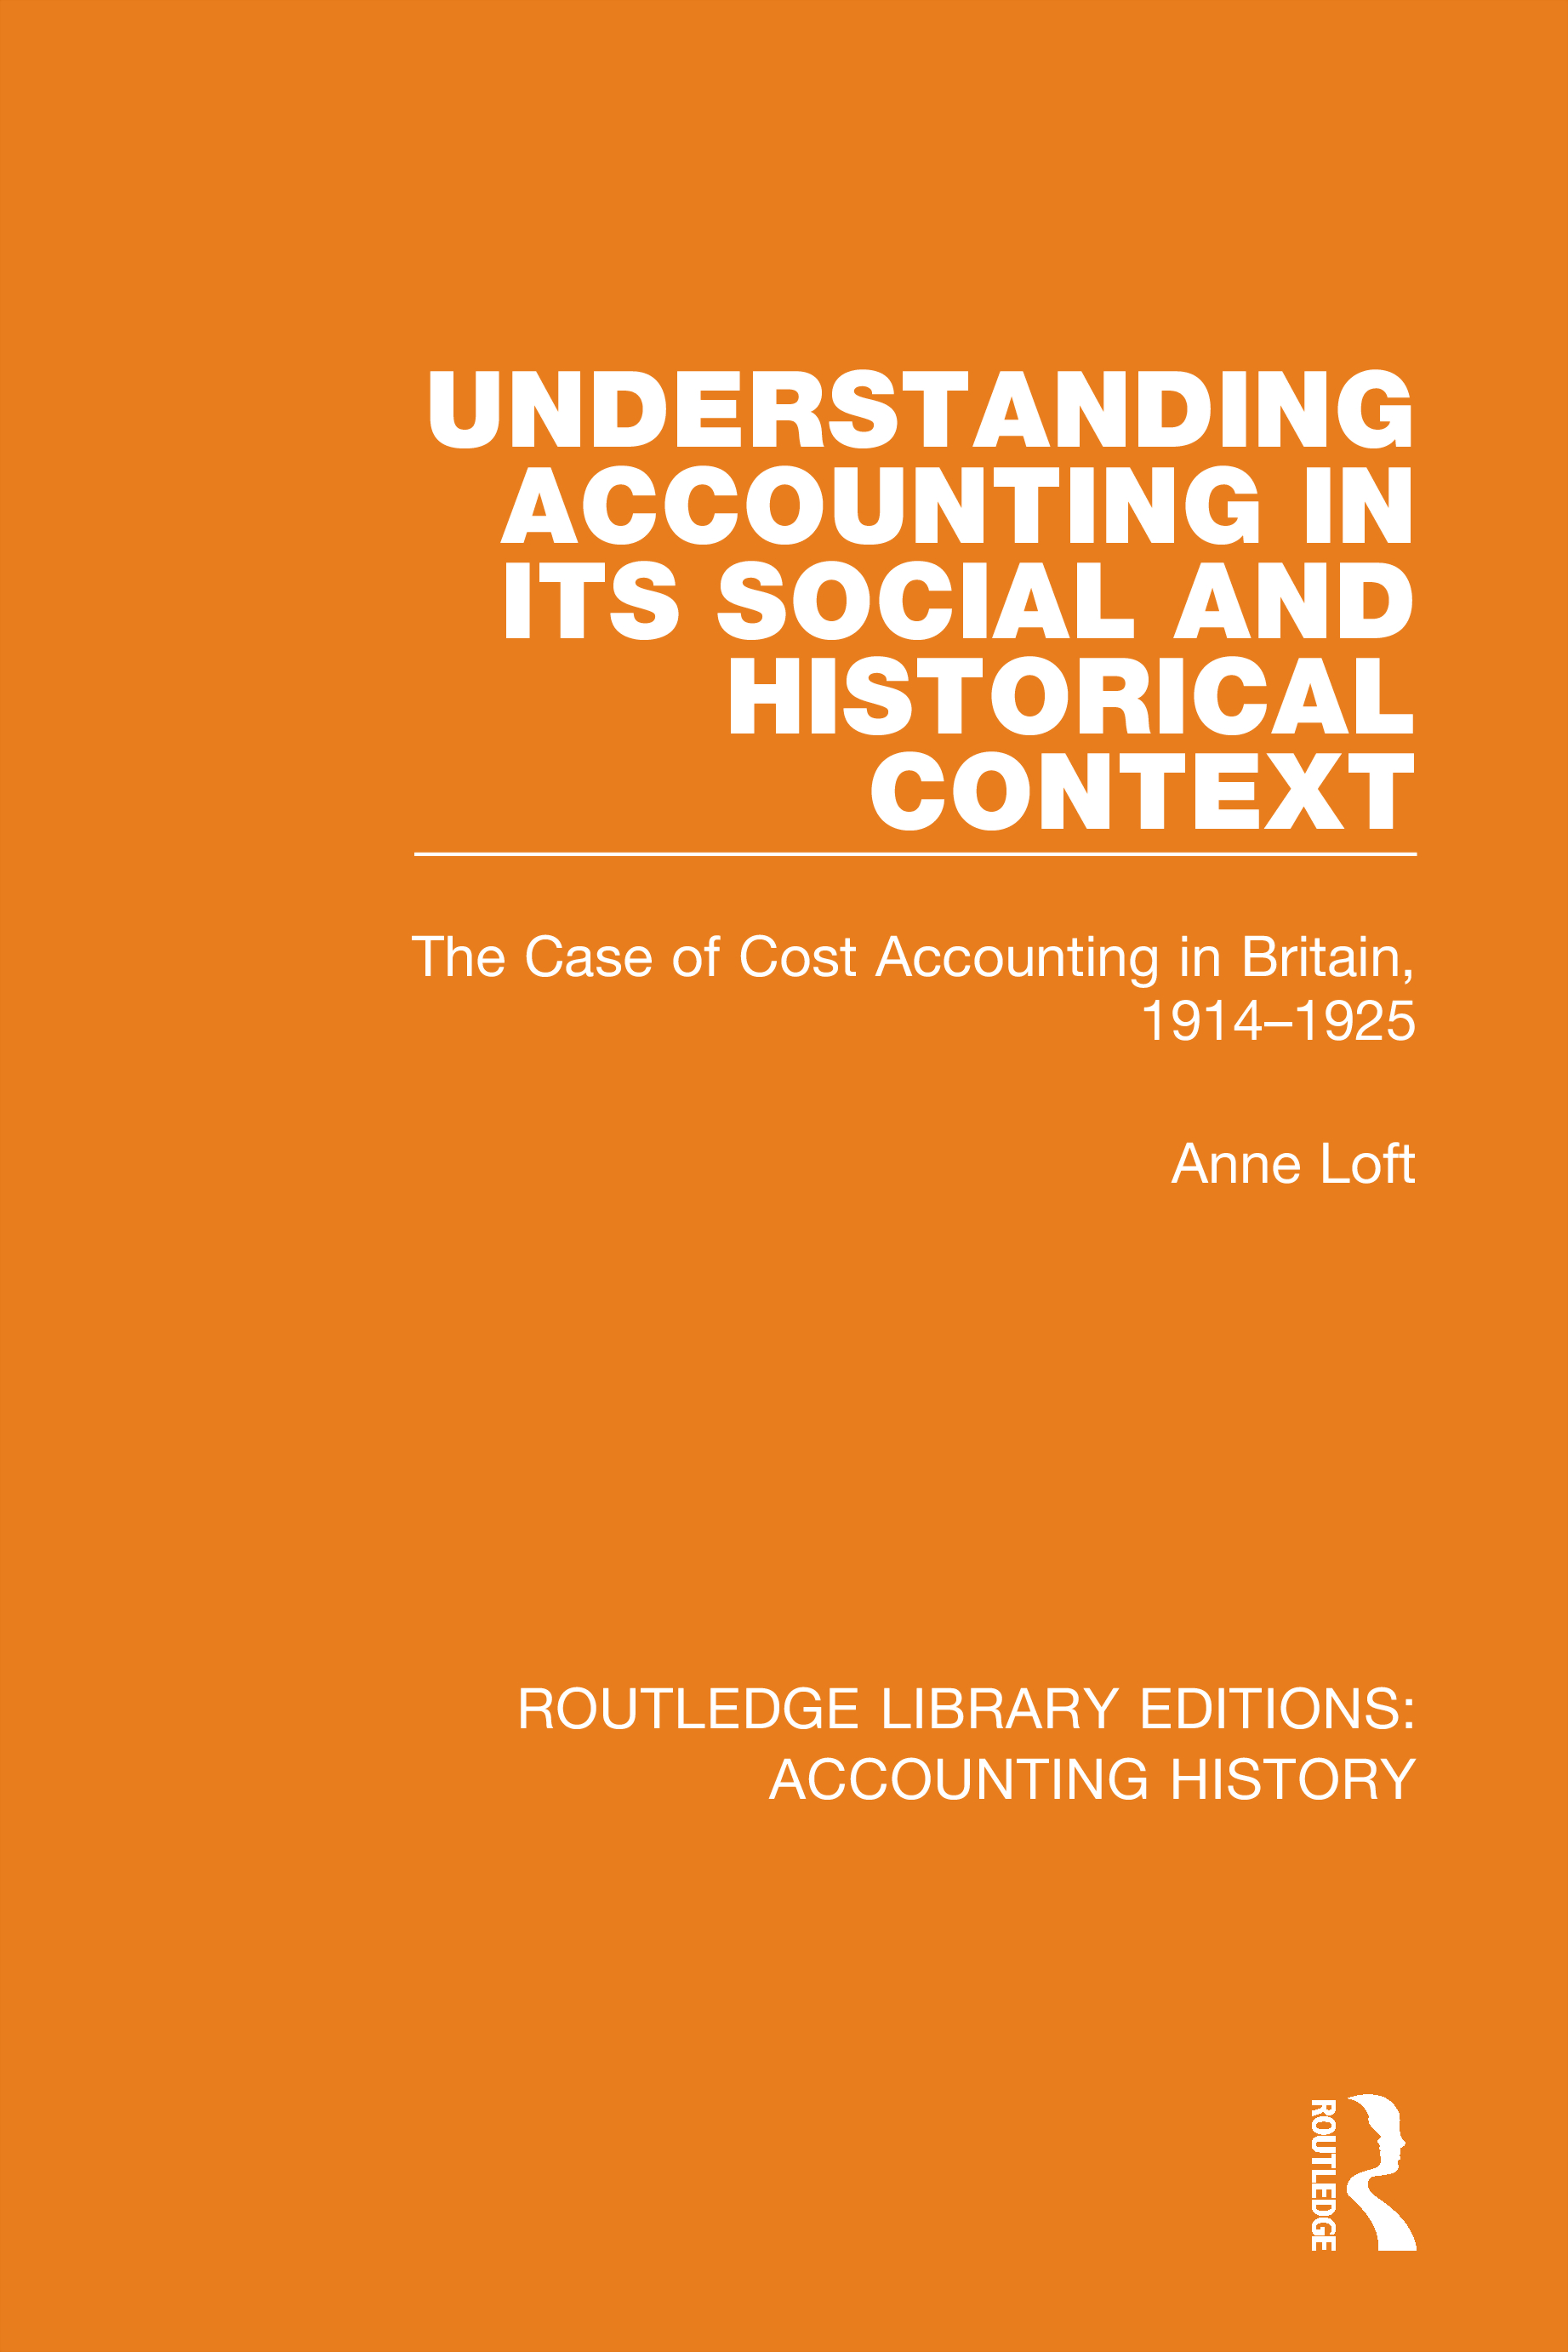 The Institute of Cost and Works Accountants